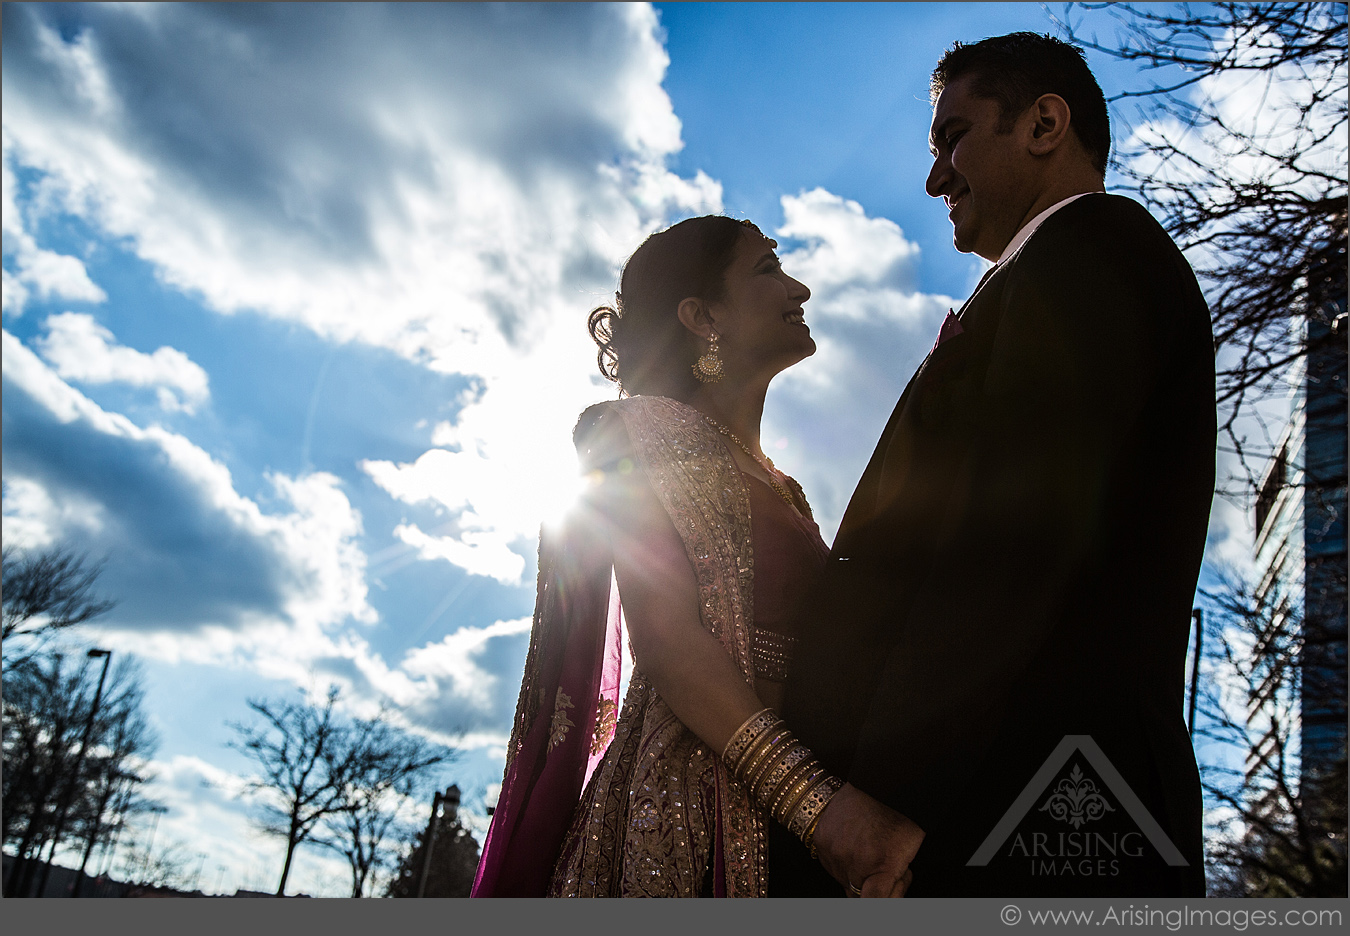 rochester michigan wedding photography with arising images